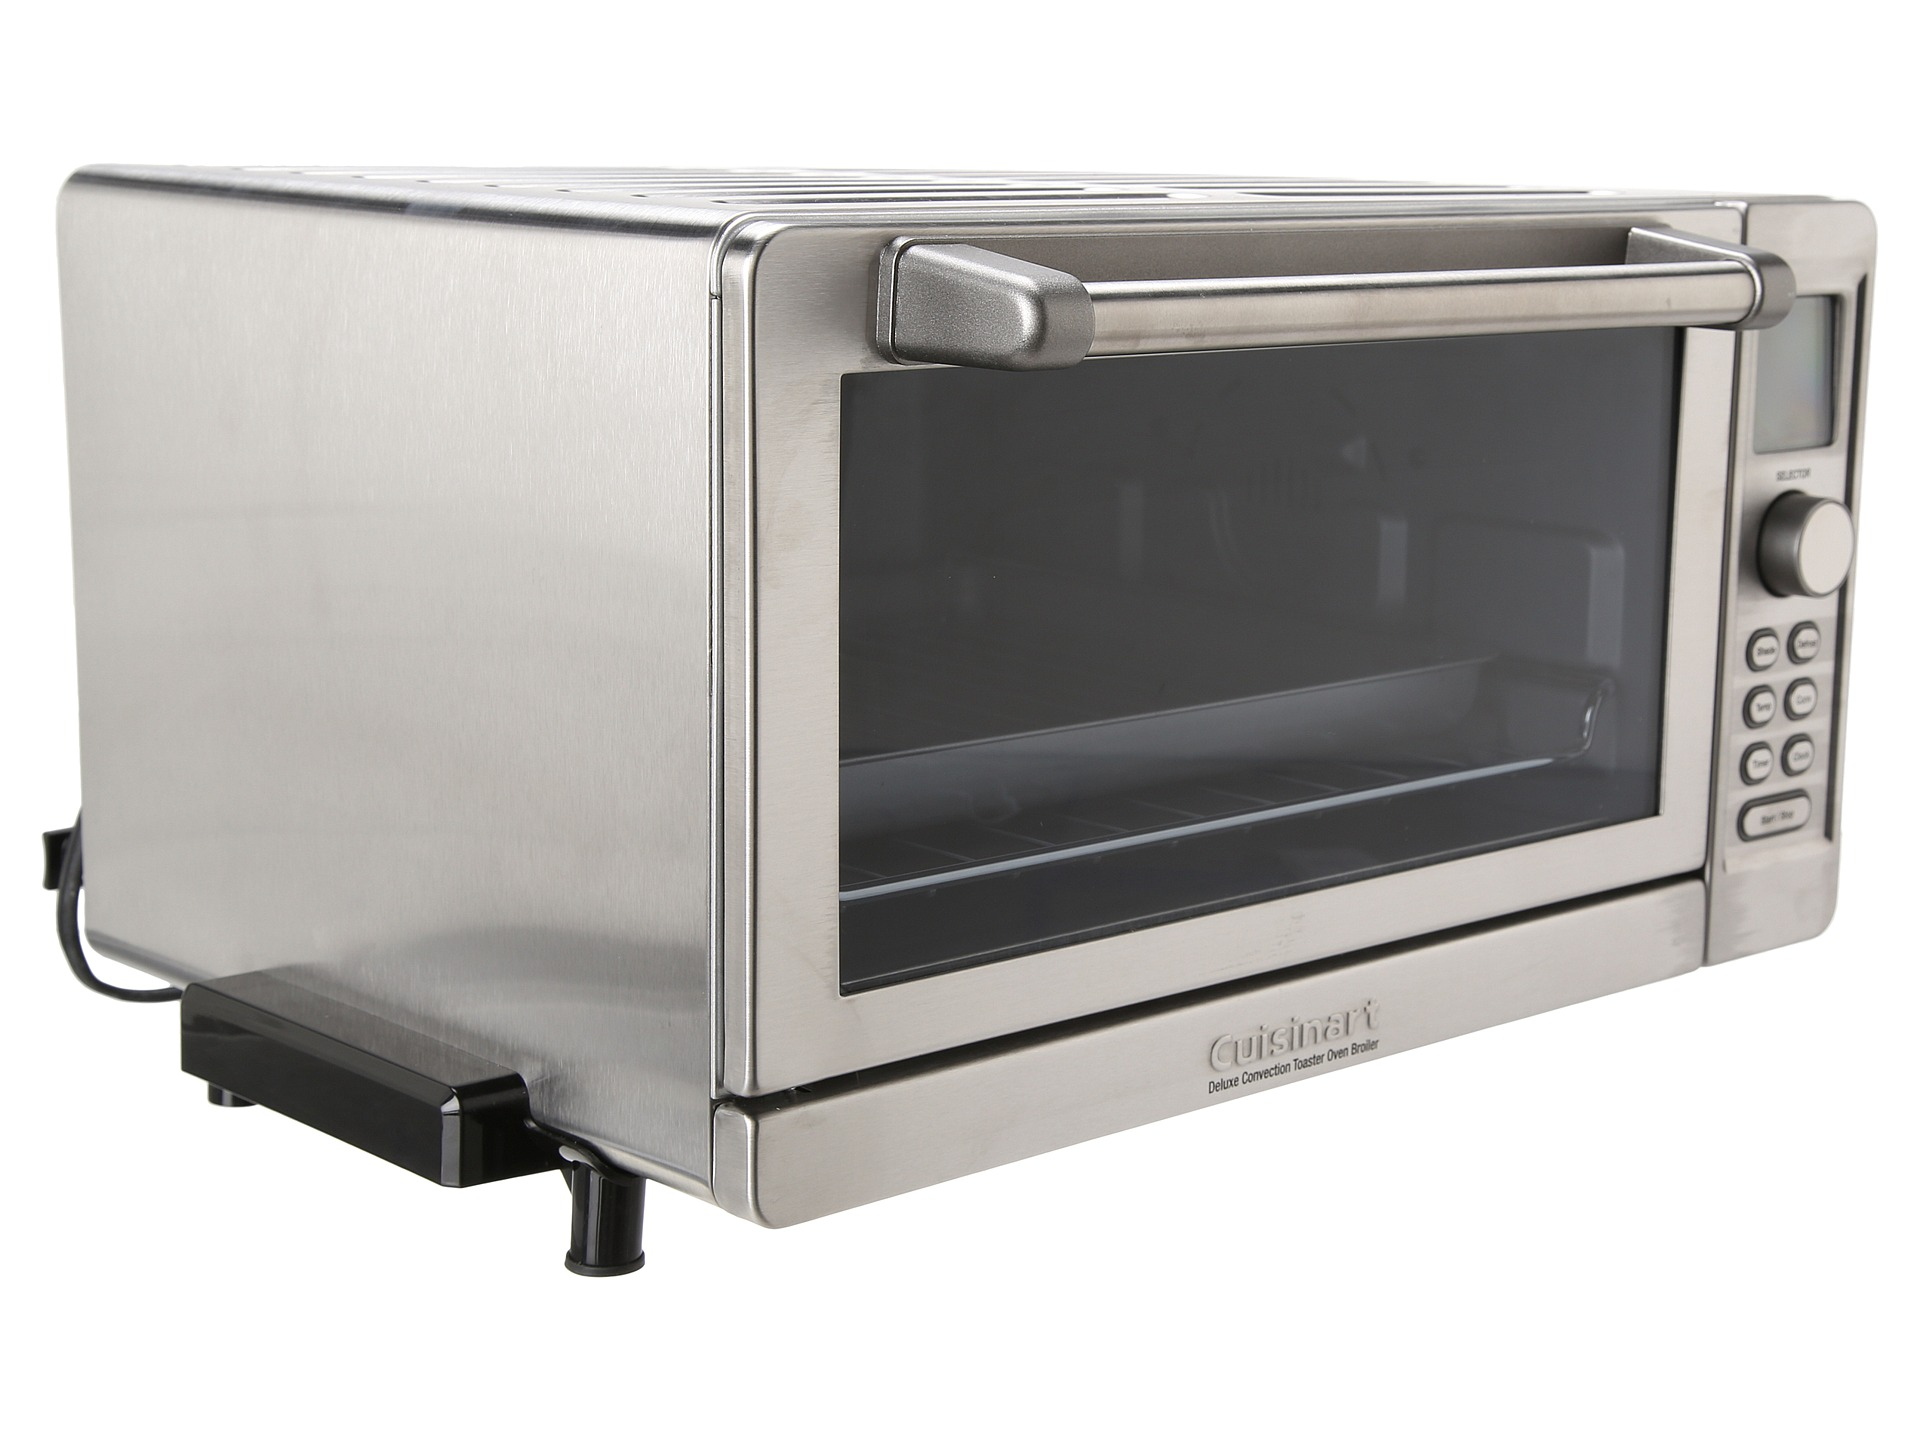 Farberware Convection Countertop Oven Stainless Steel Review : TOB-135 Deluxe Convection Toaster Oven Broiler Brushed Stainless Steel ...